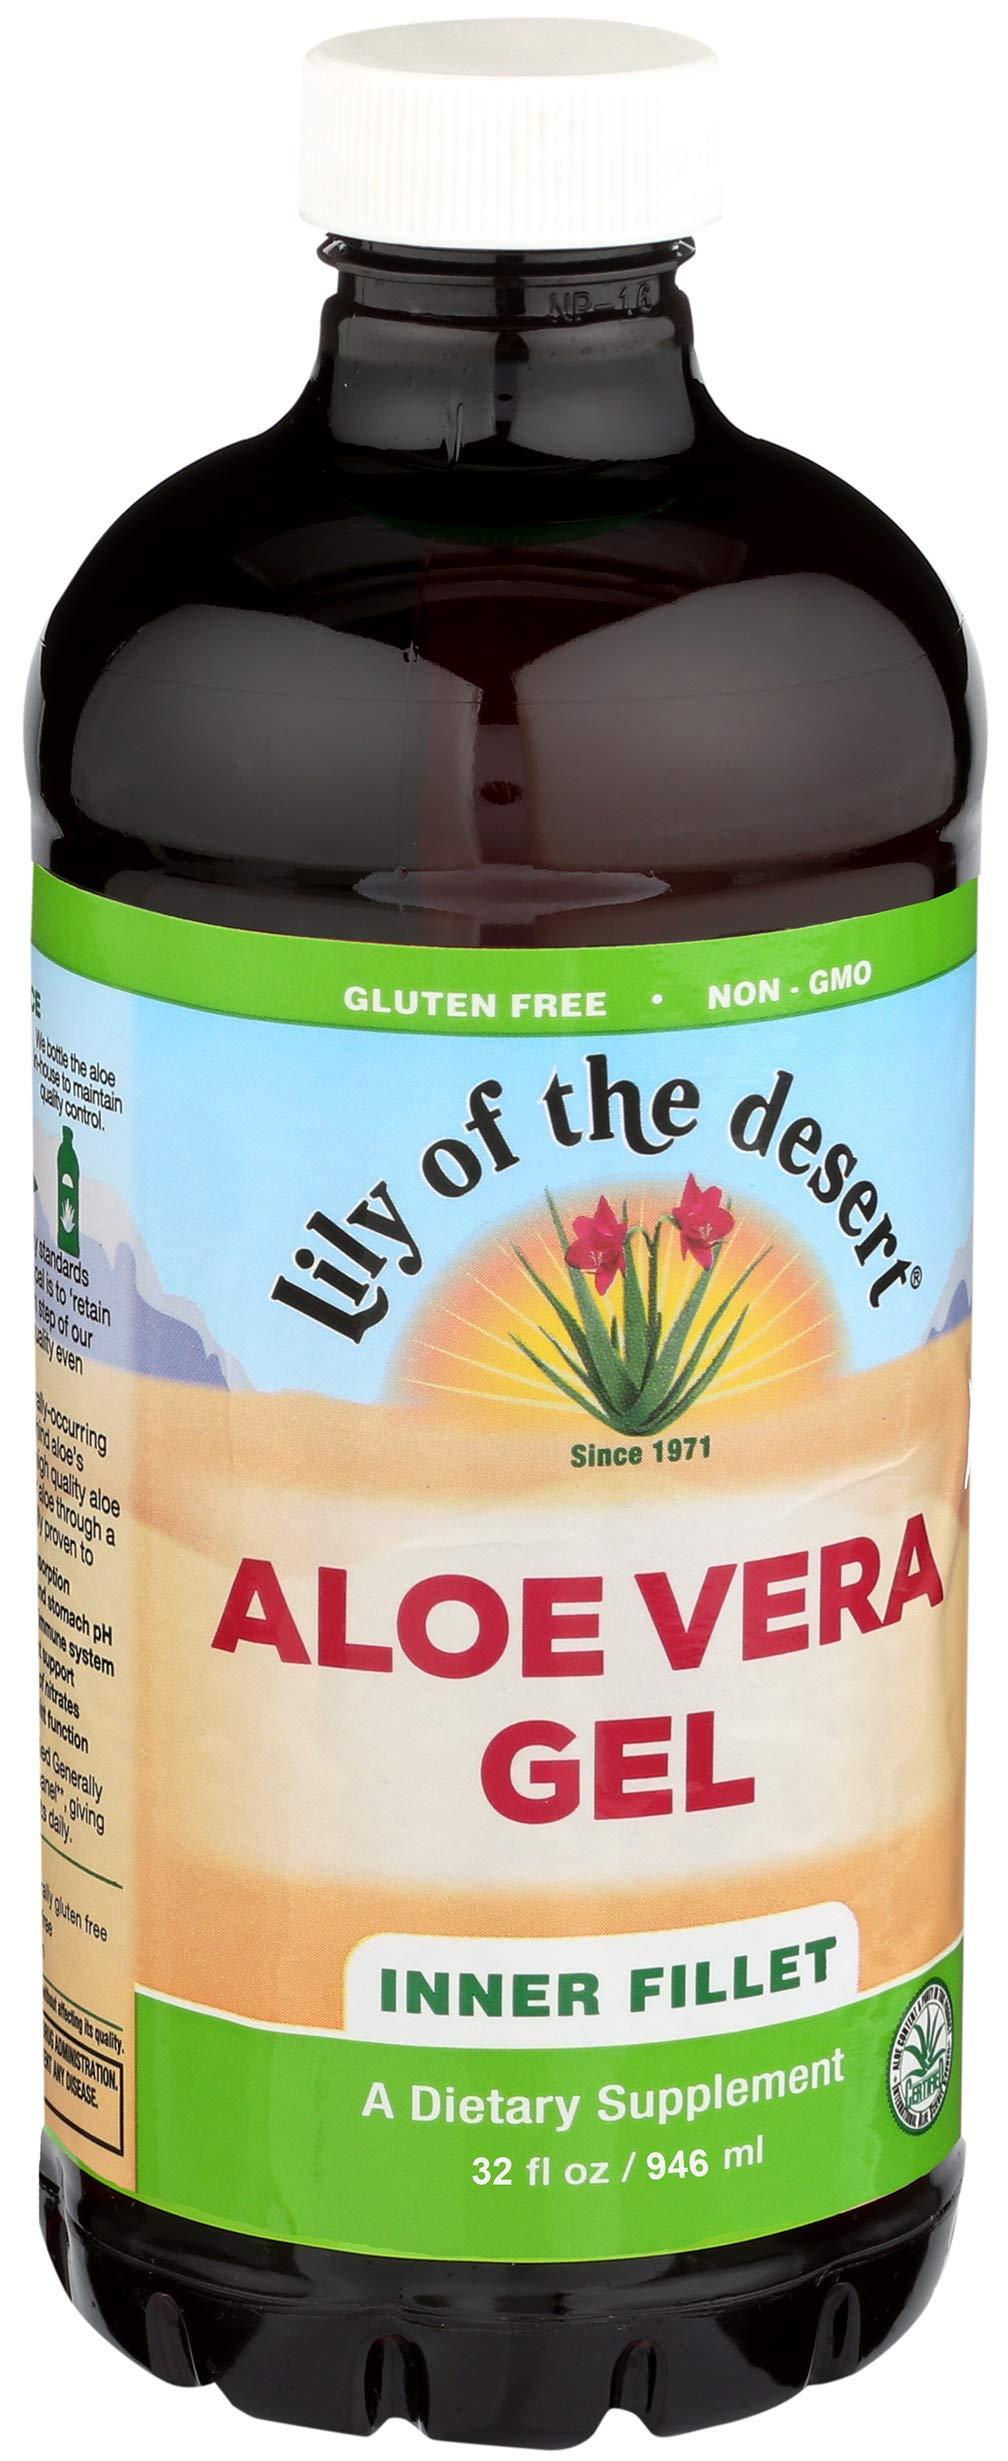 Lily of the Desert Aloe Vera Gel, Inner Fillet, 32 Ounces (Pack of 2)